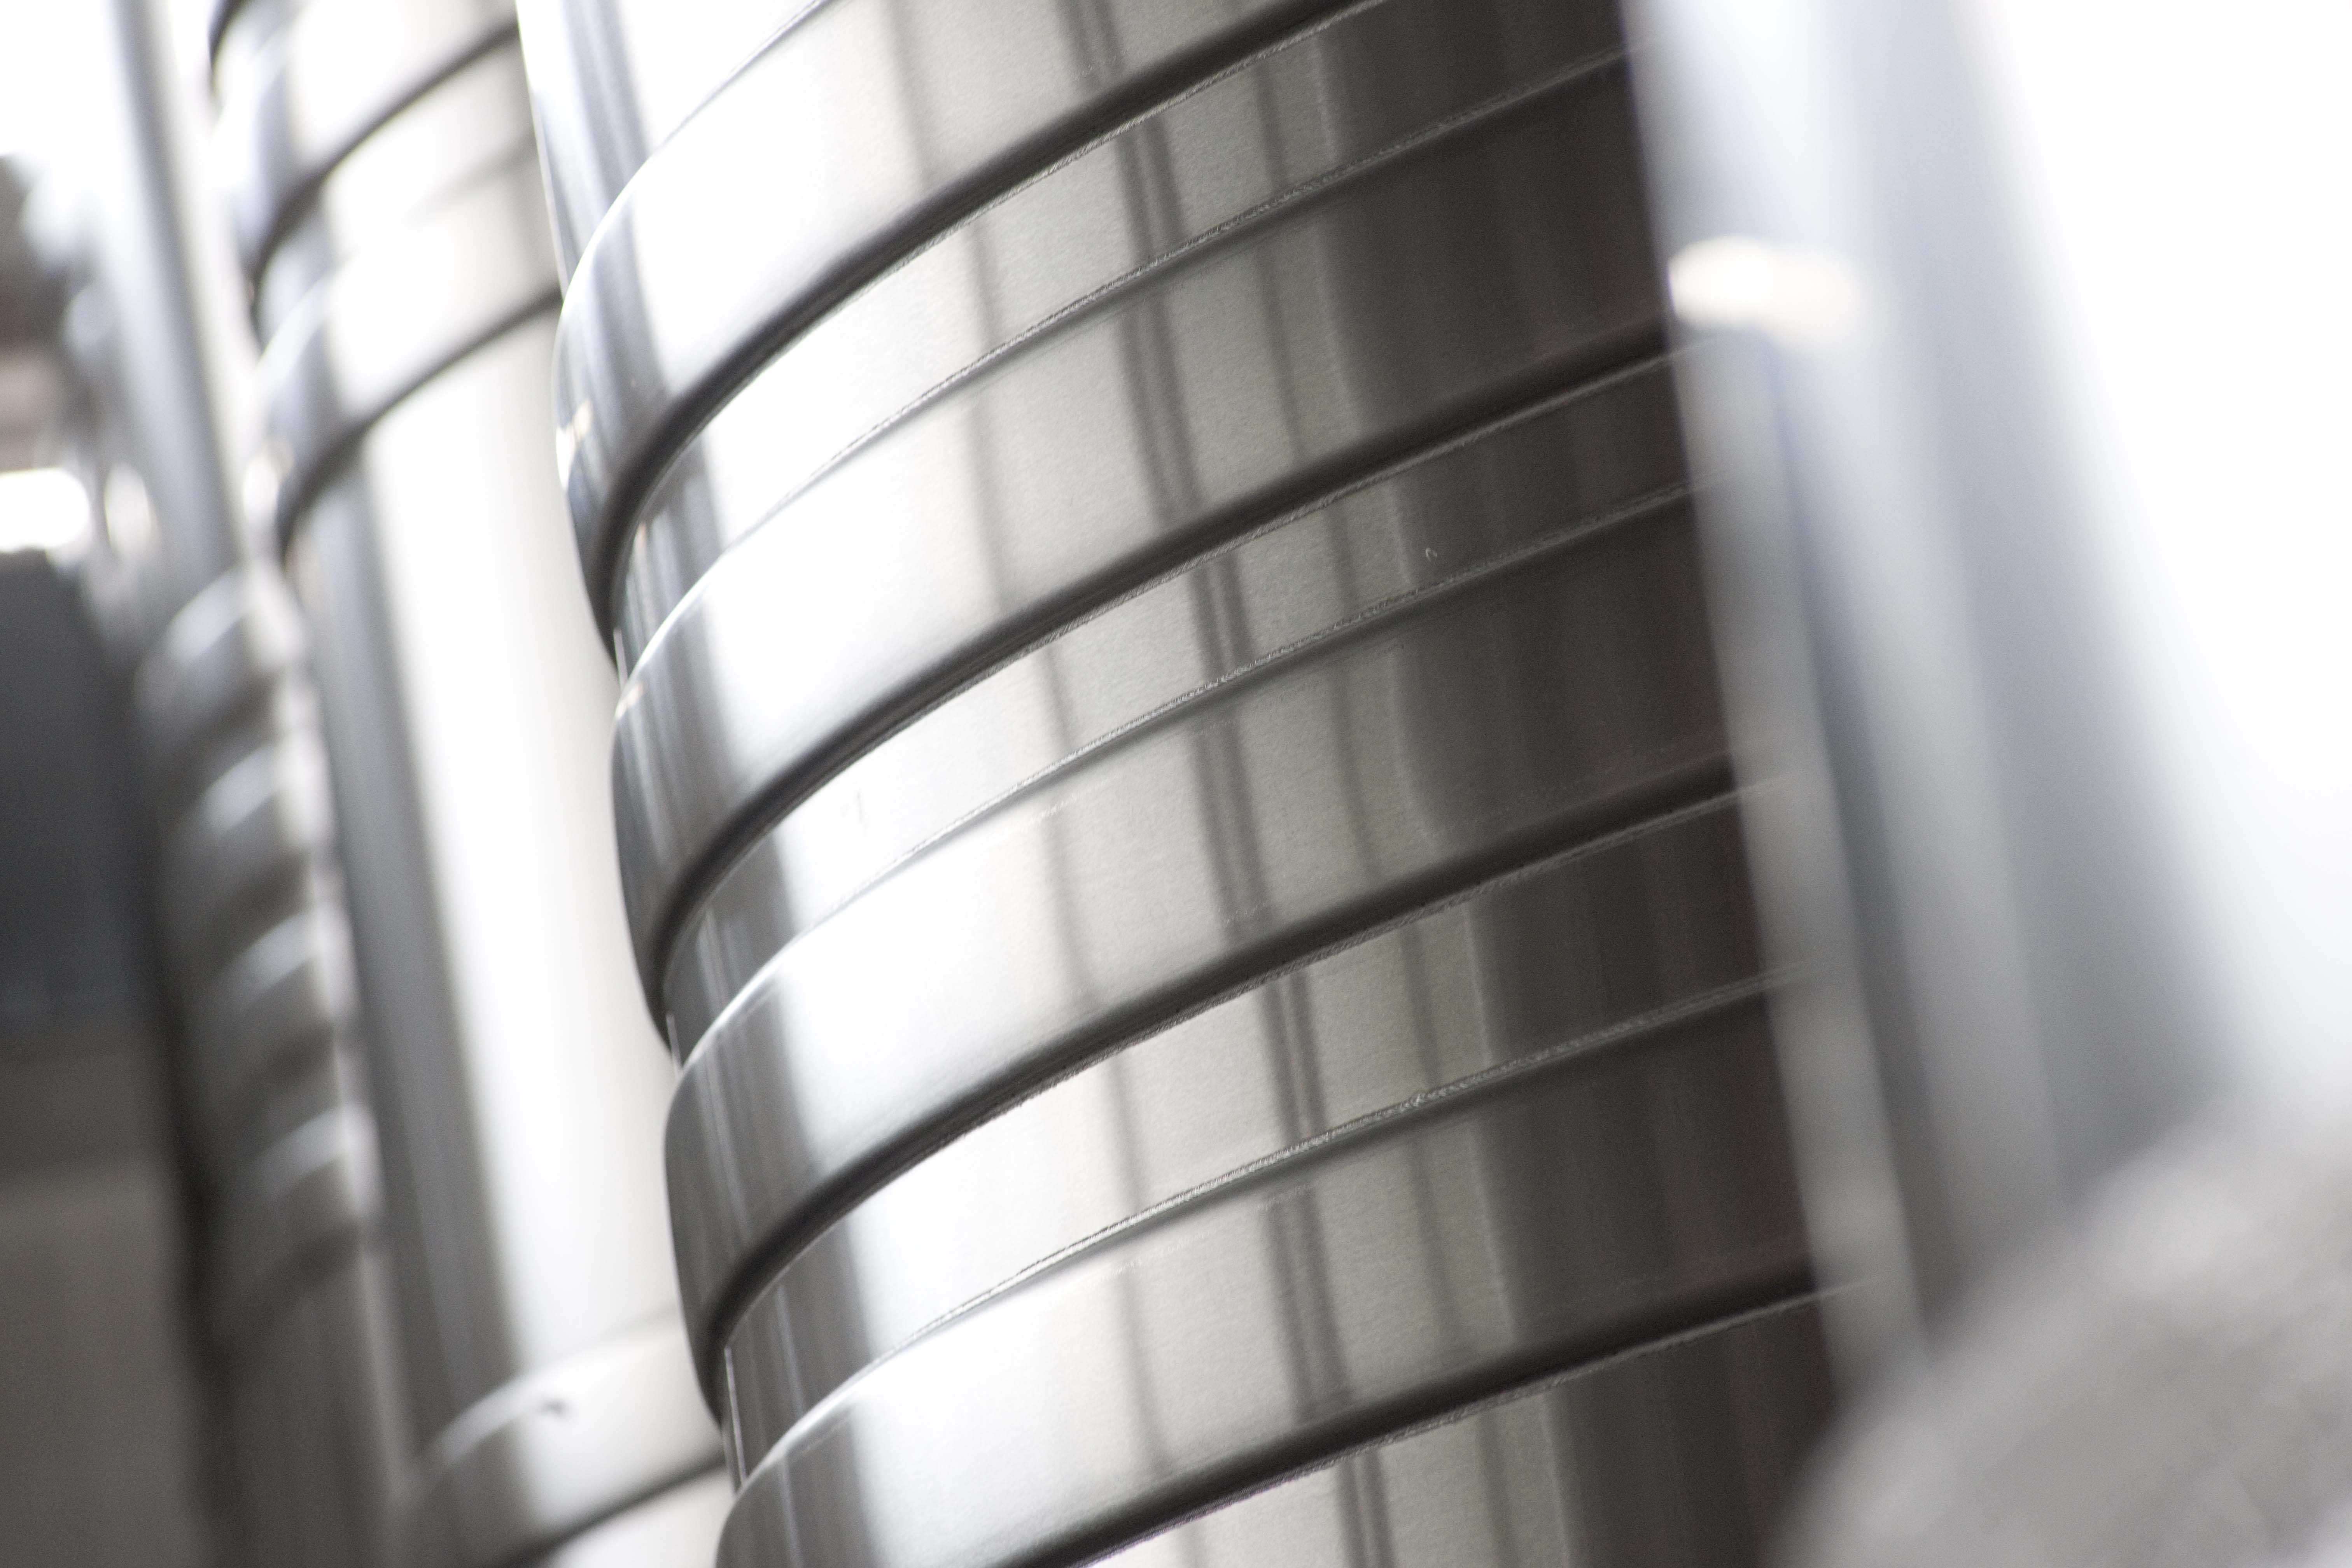 Stainless Steel Pipes, Chandon, France, Industrial, Industry, HQ Photo